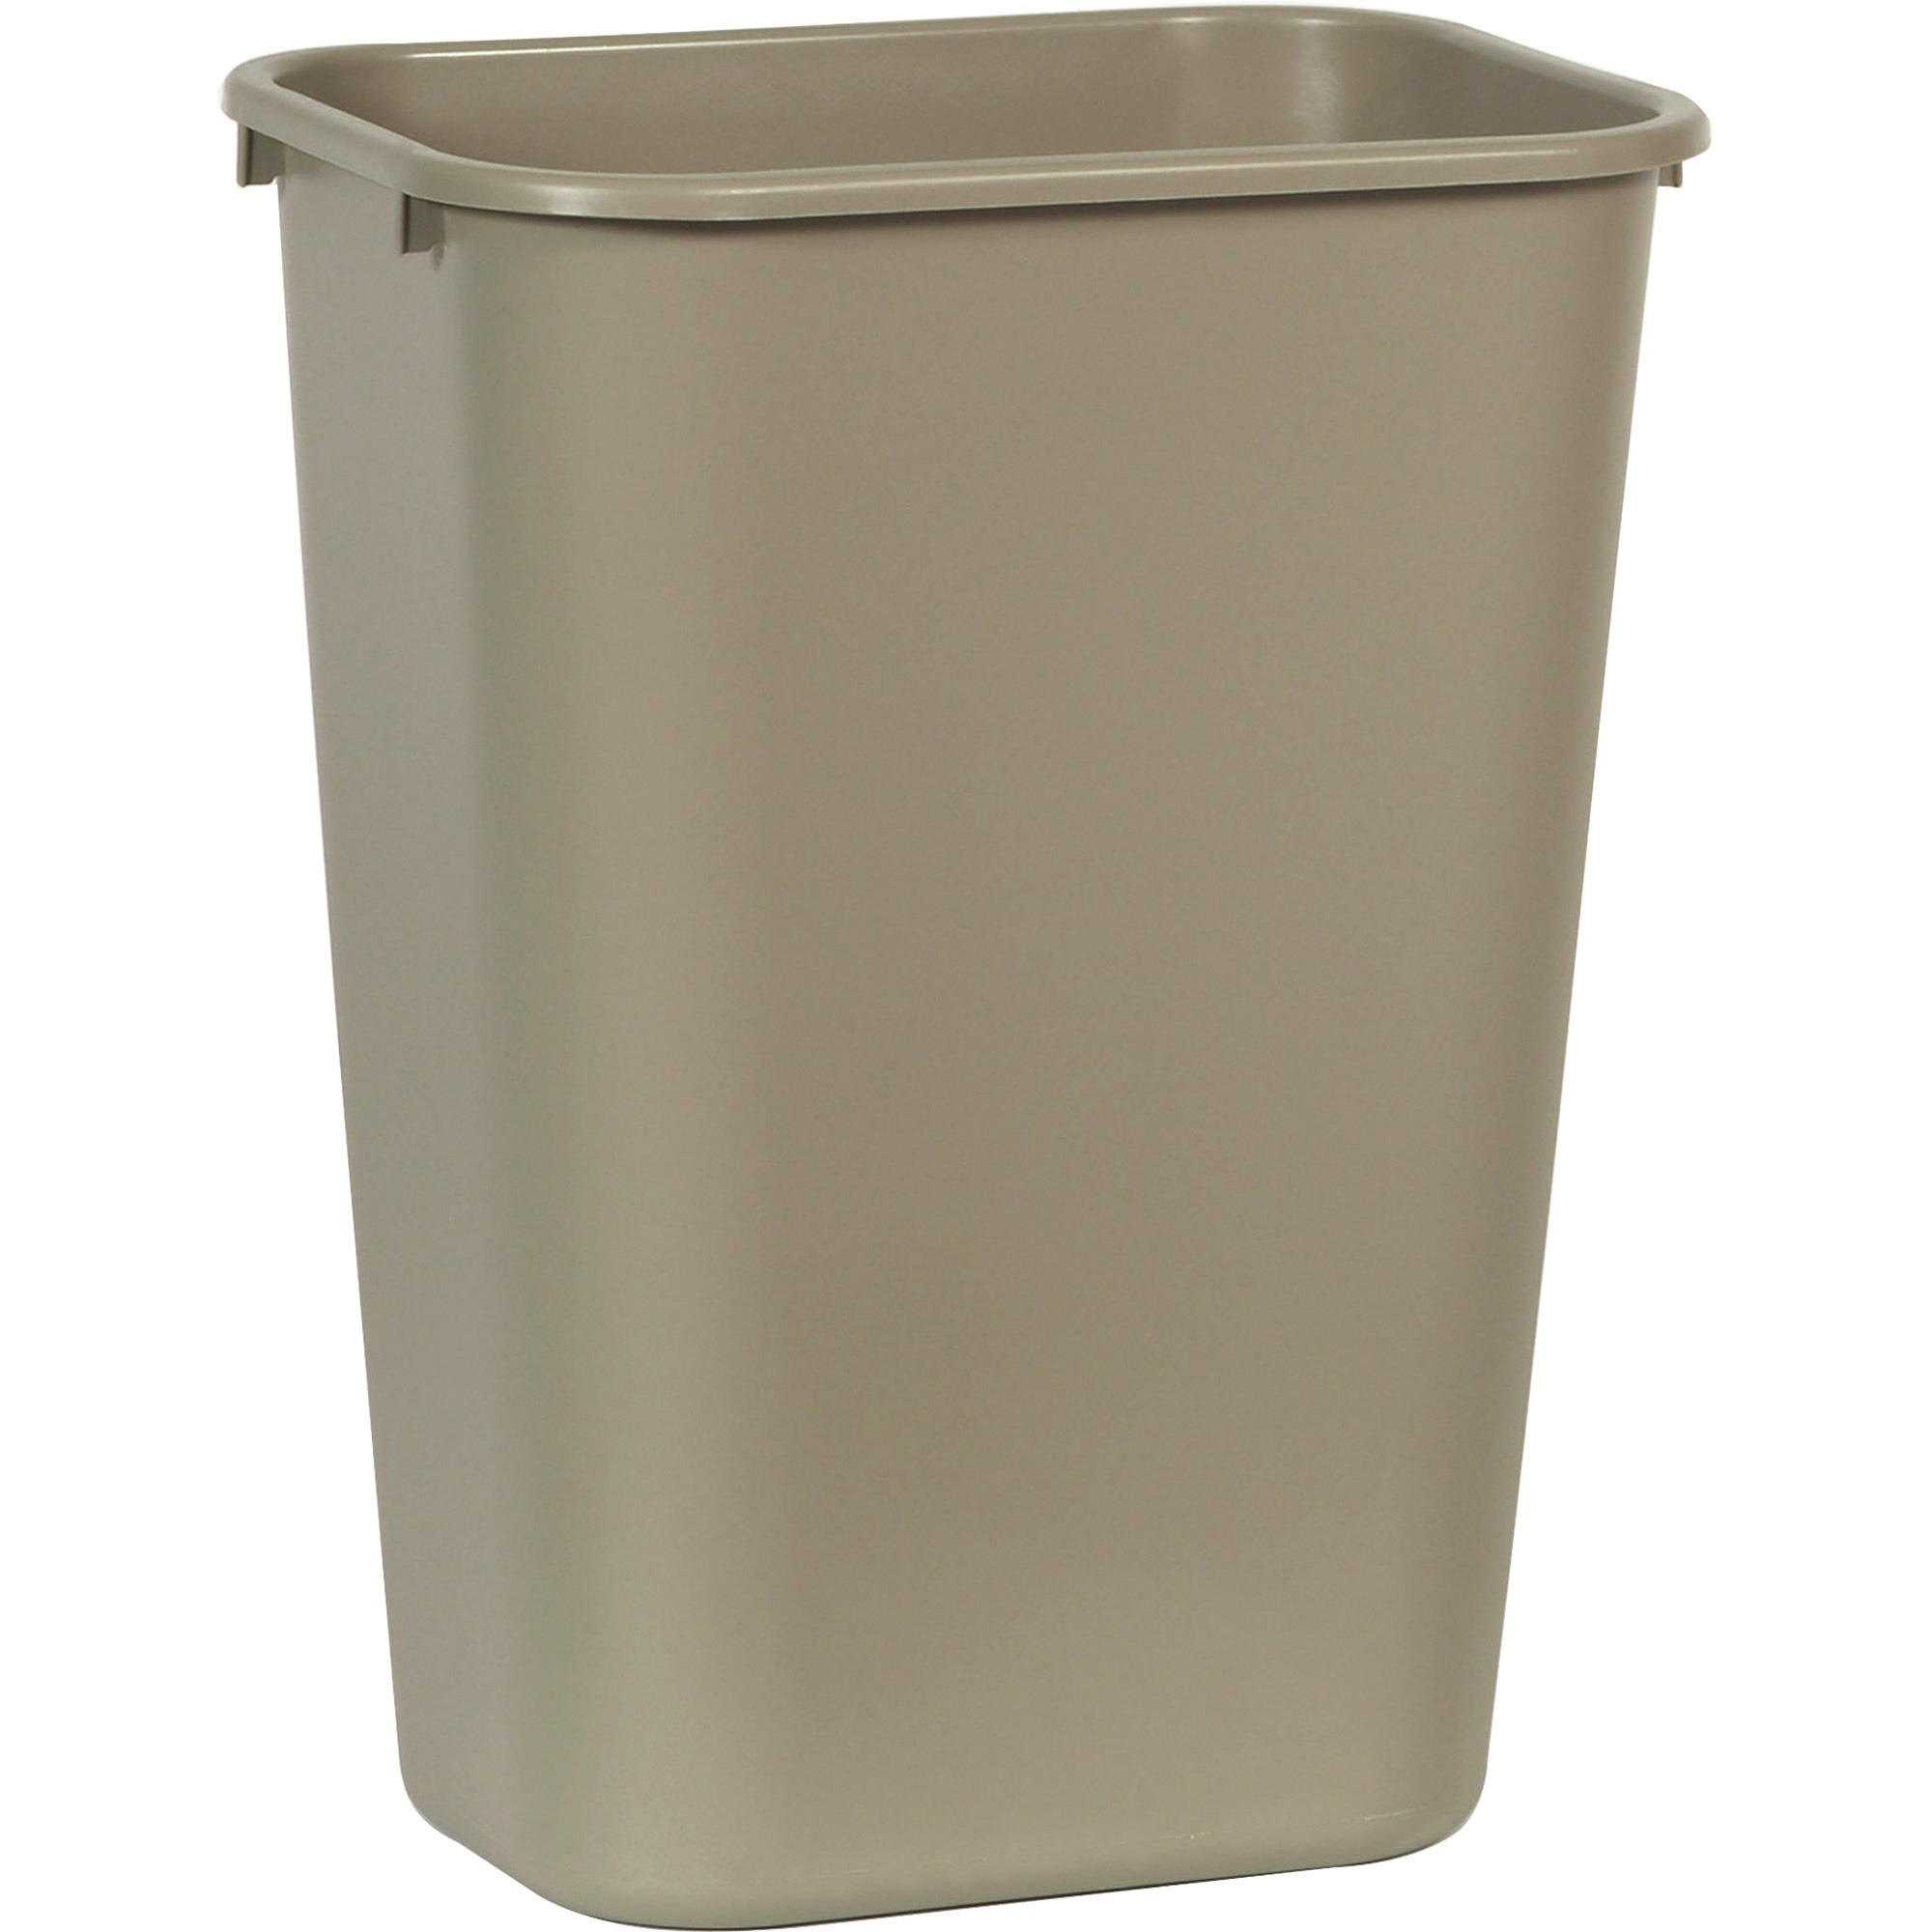 Rubbermaid 295700BG 10.25 Gal. Desk side Plastic Wastebasket (Beige)